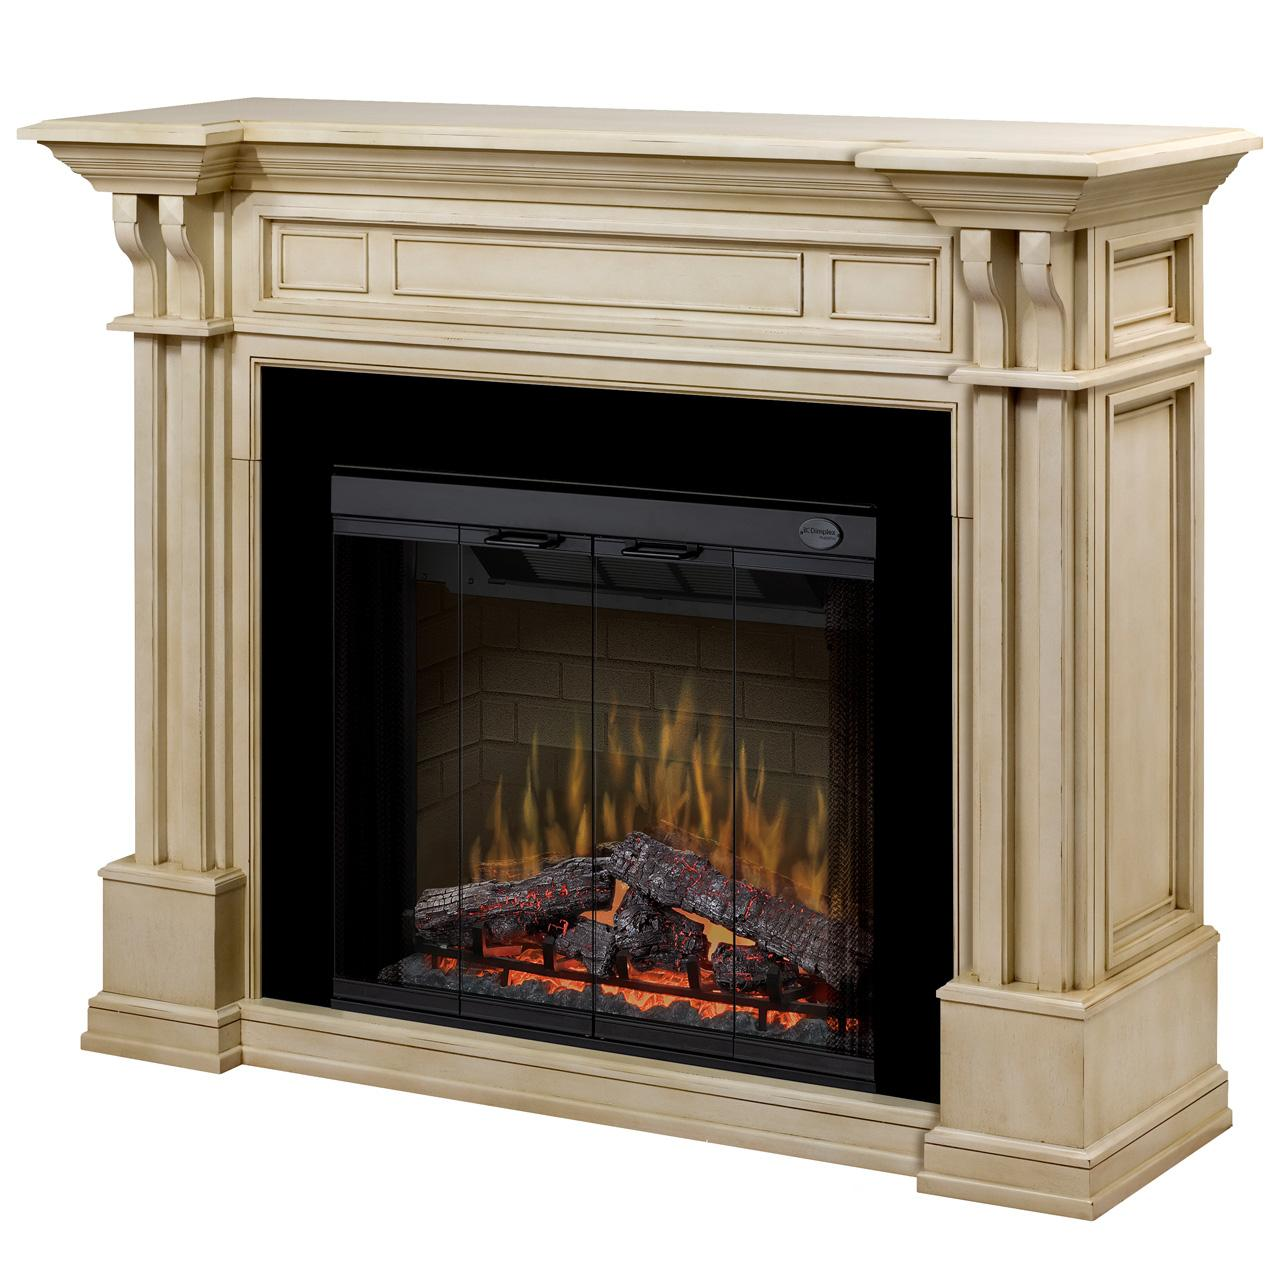 Big Lots Furniture Extended Warranty: Kendal Electric Fireplace